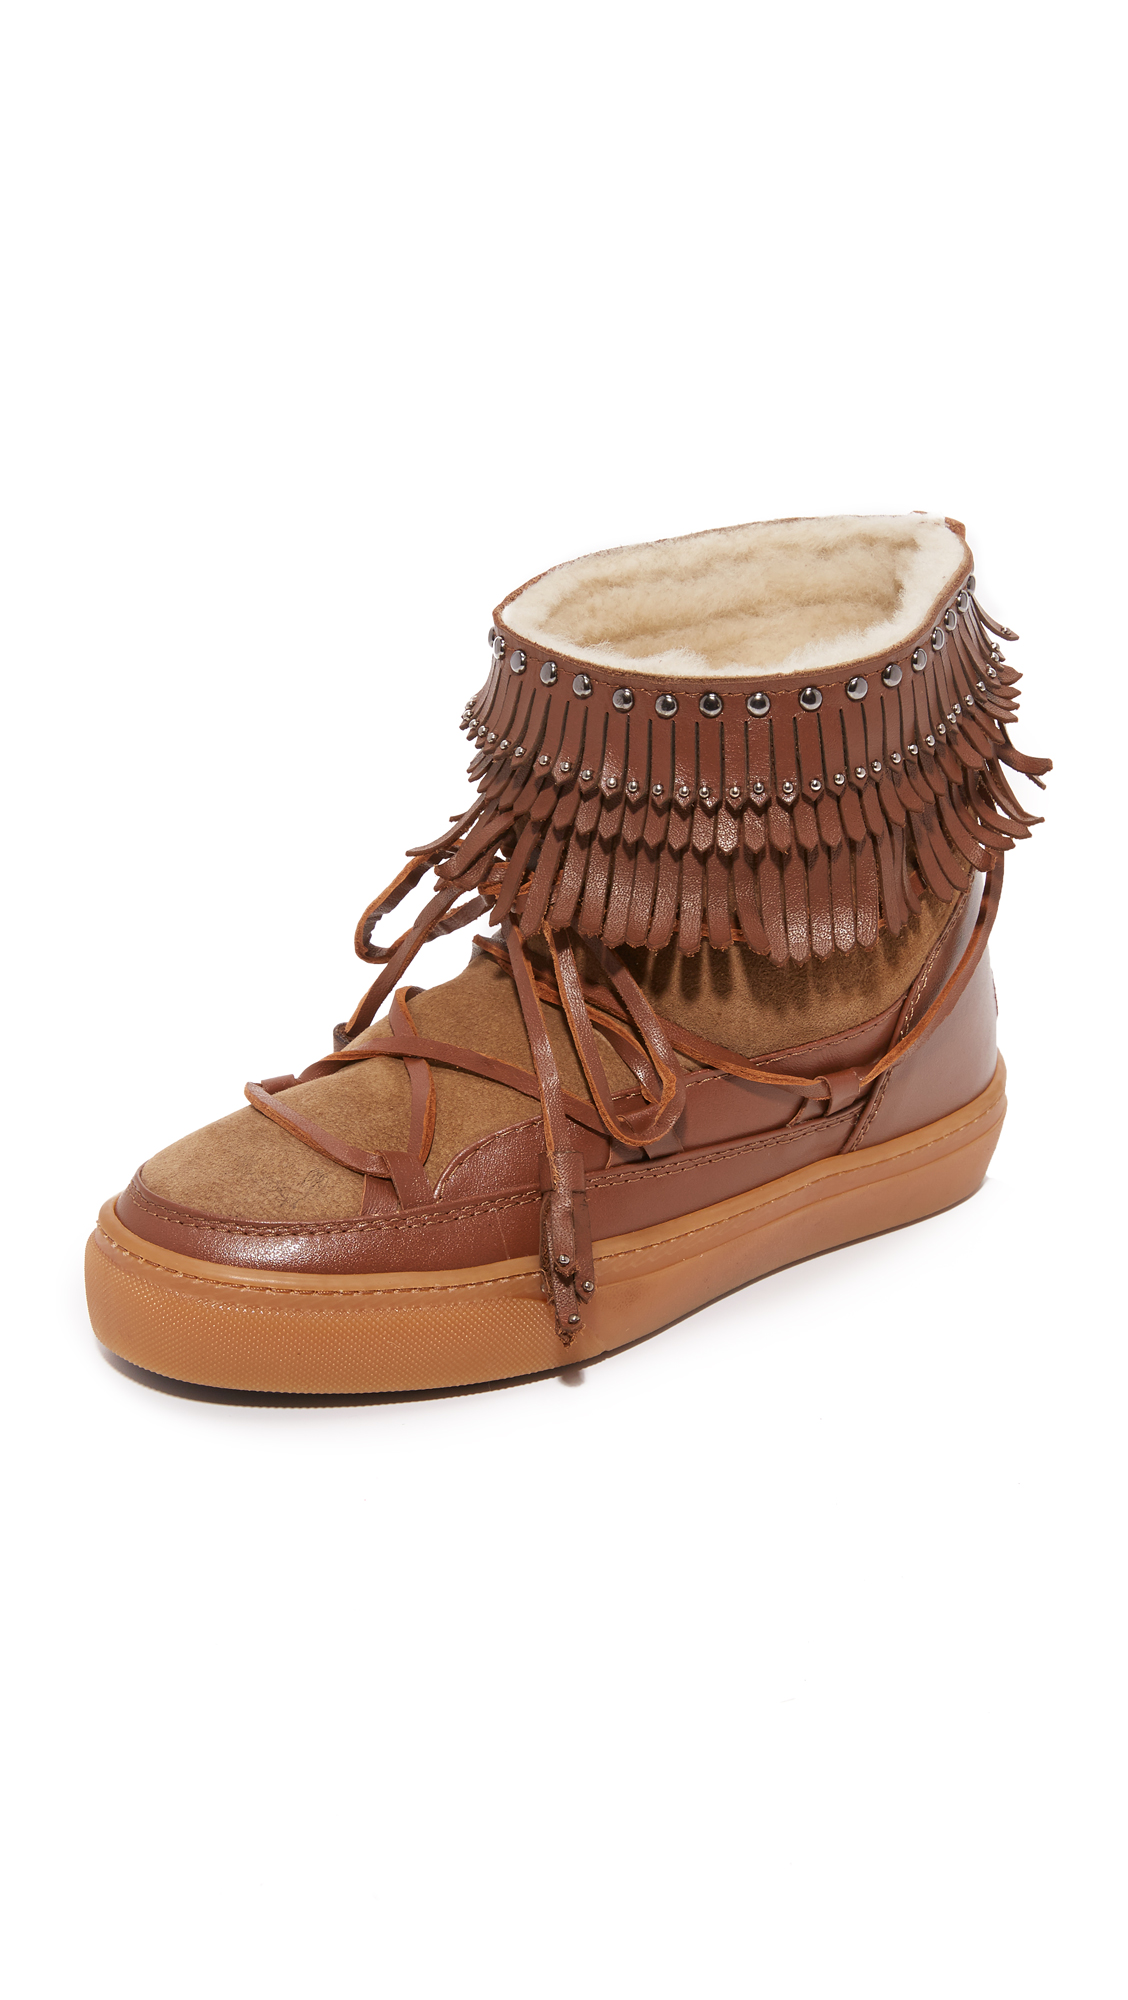 Inuiki Fray Sneaker Booties - Coconut